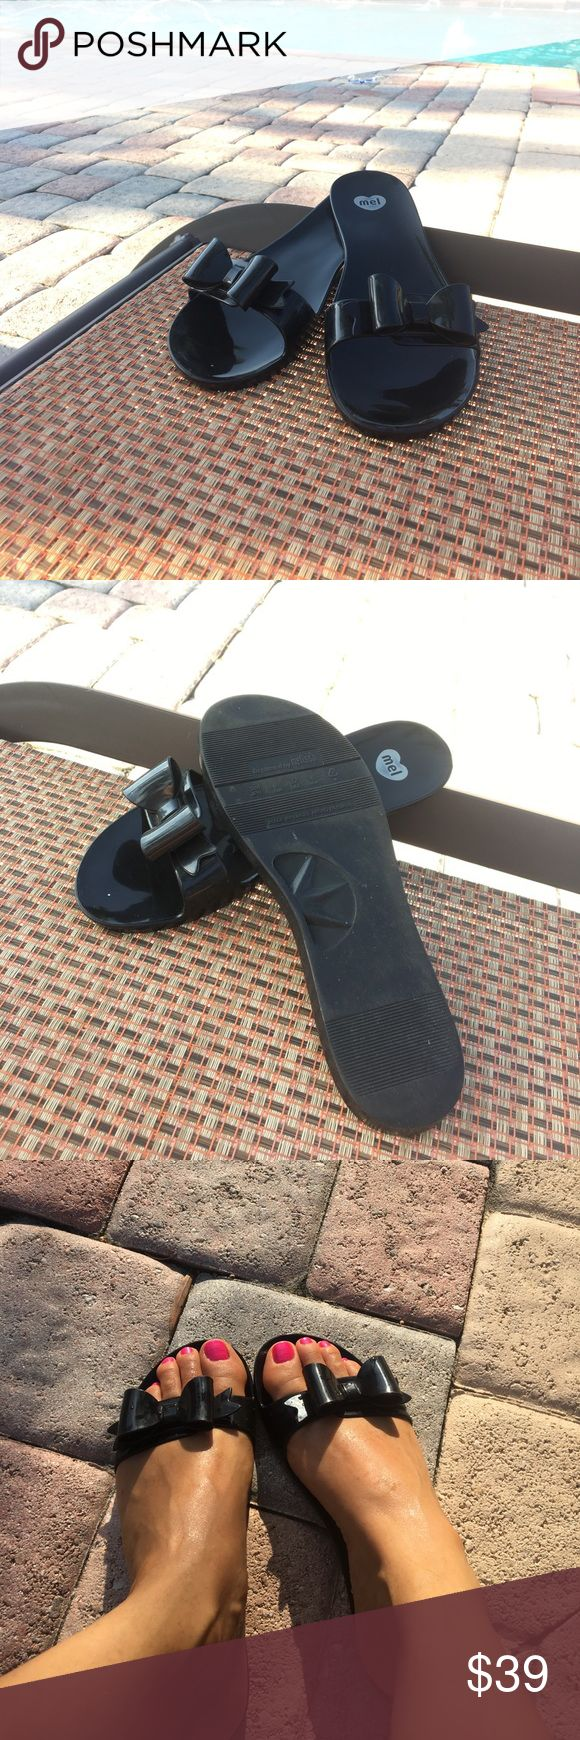 Melissa jelly bow flat sandals Great for water park,pool...and beach❤️size8 Melissa Shoes Sandals